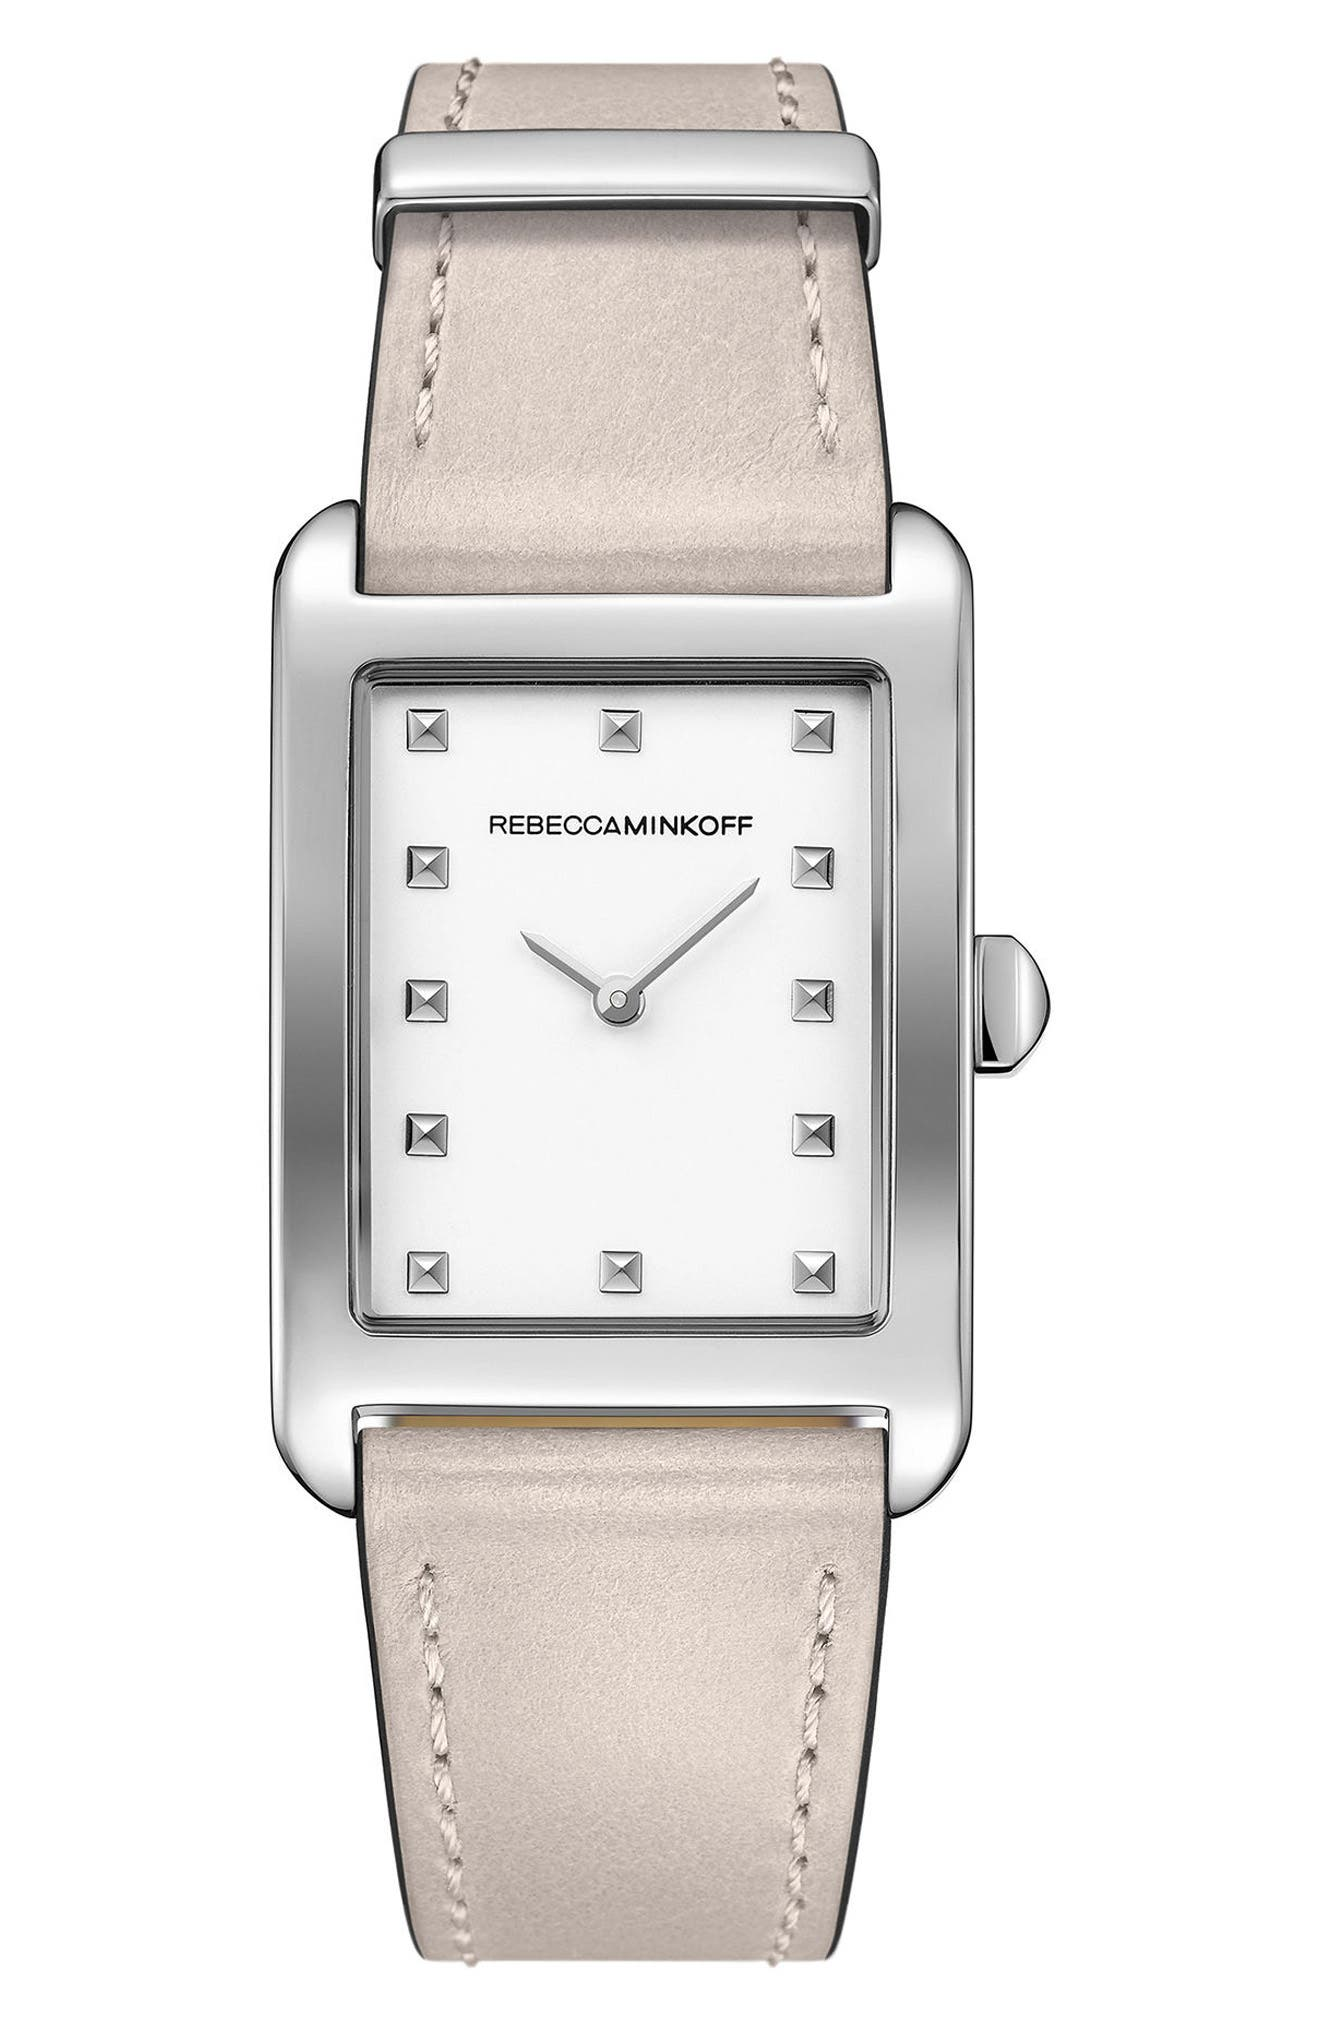 Main Image - Rebecca Minkoff Moment Leather Strap Watch, 27mm x 39mm